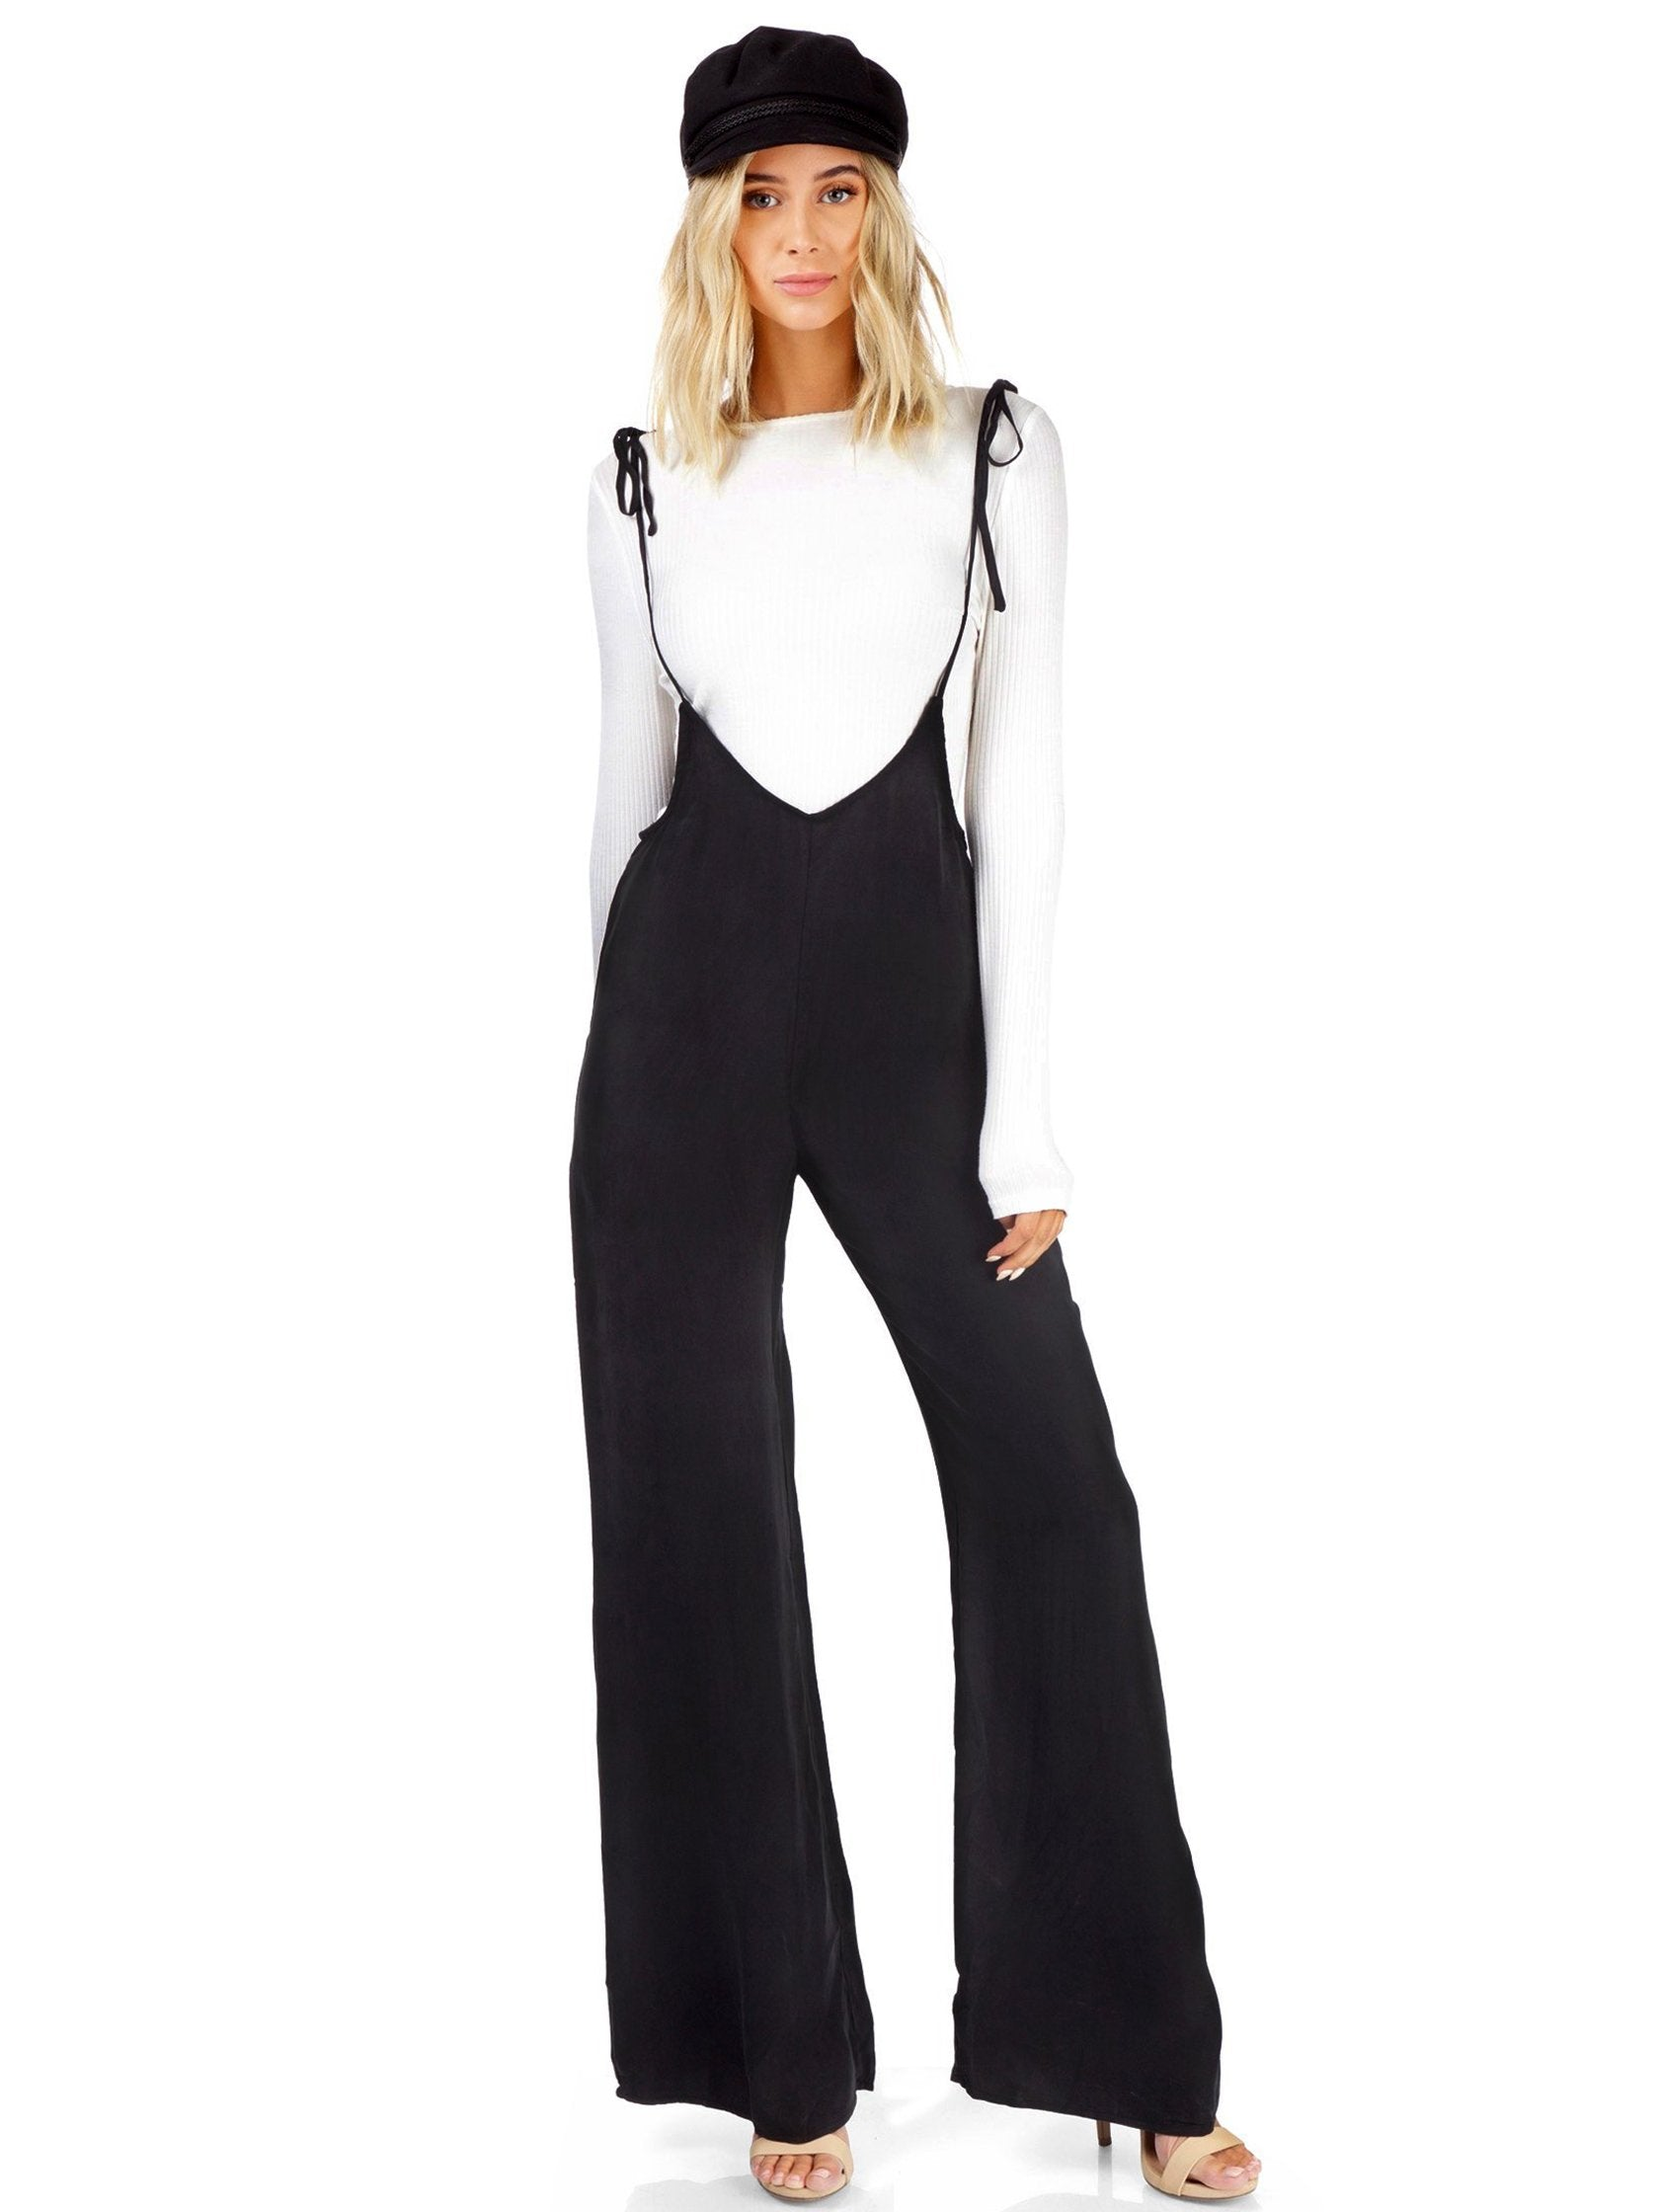 Women outfit in a jumpsuit rental from FashionPass called Sasha Jumpsuit